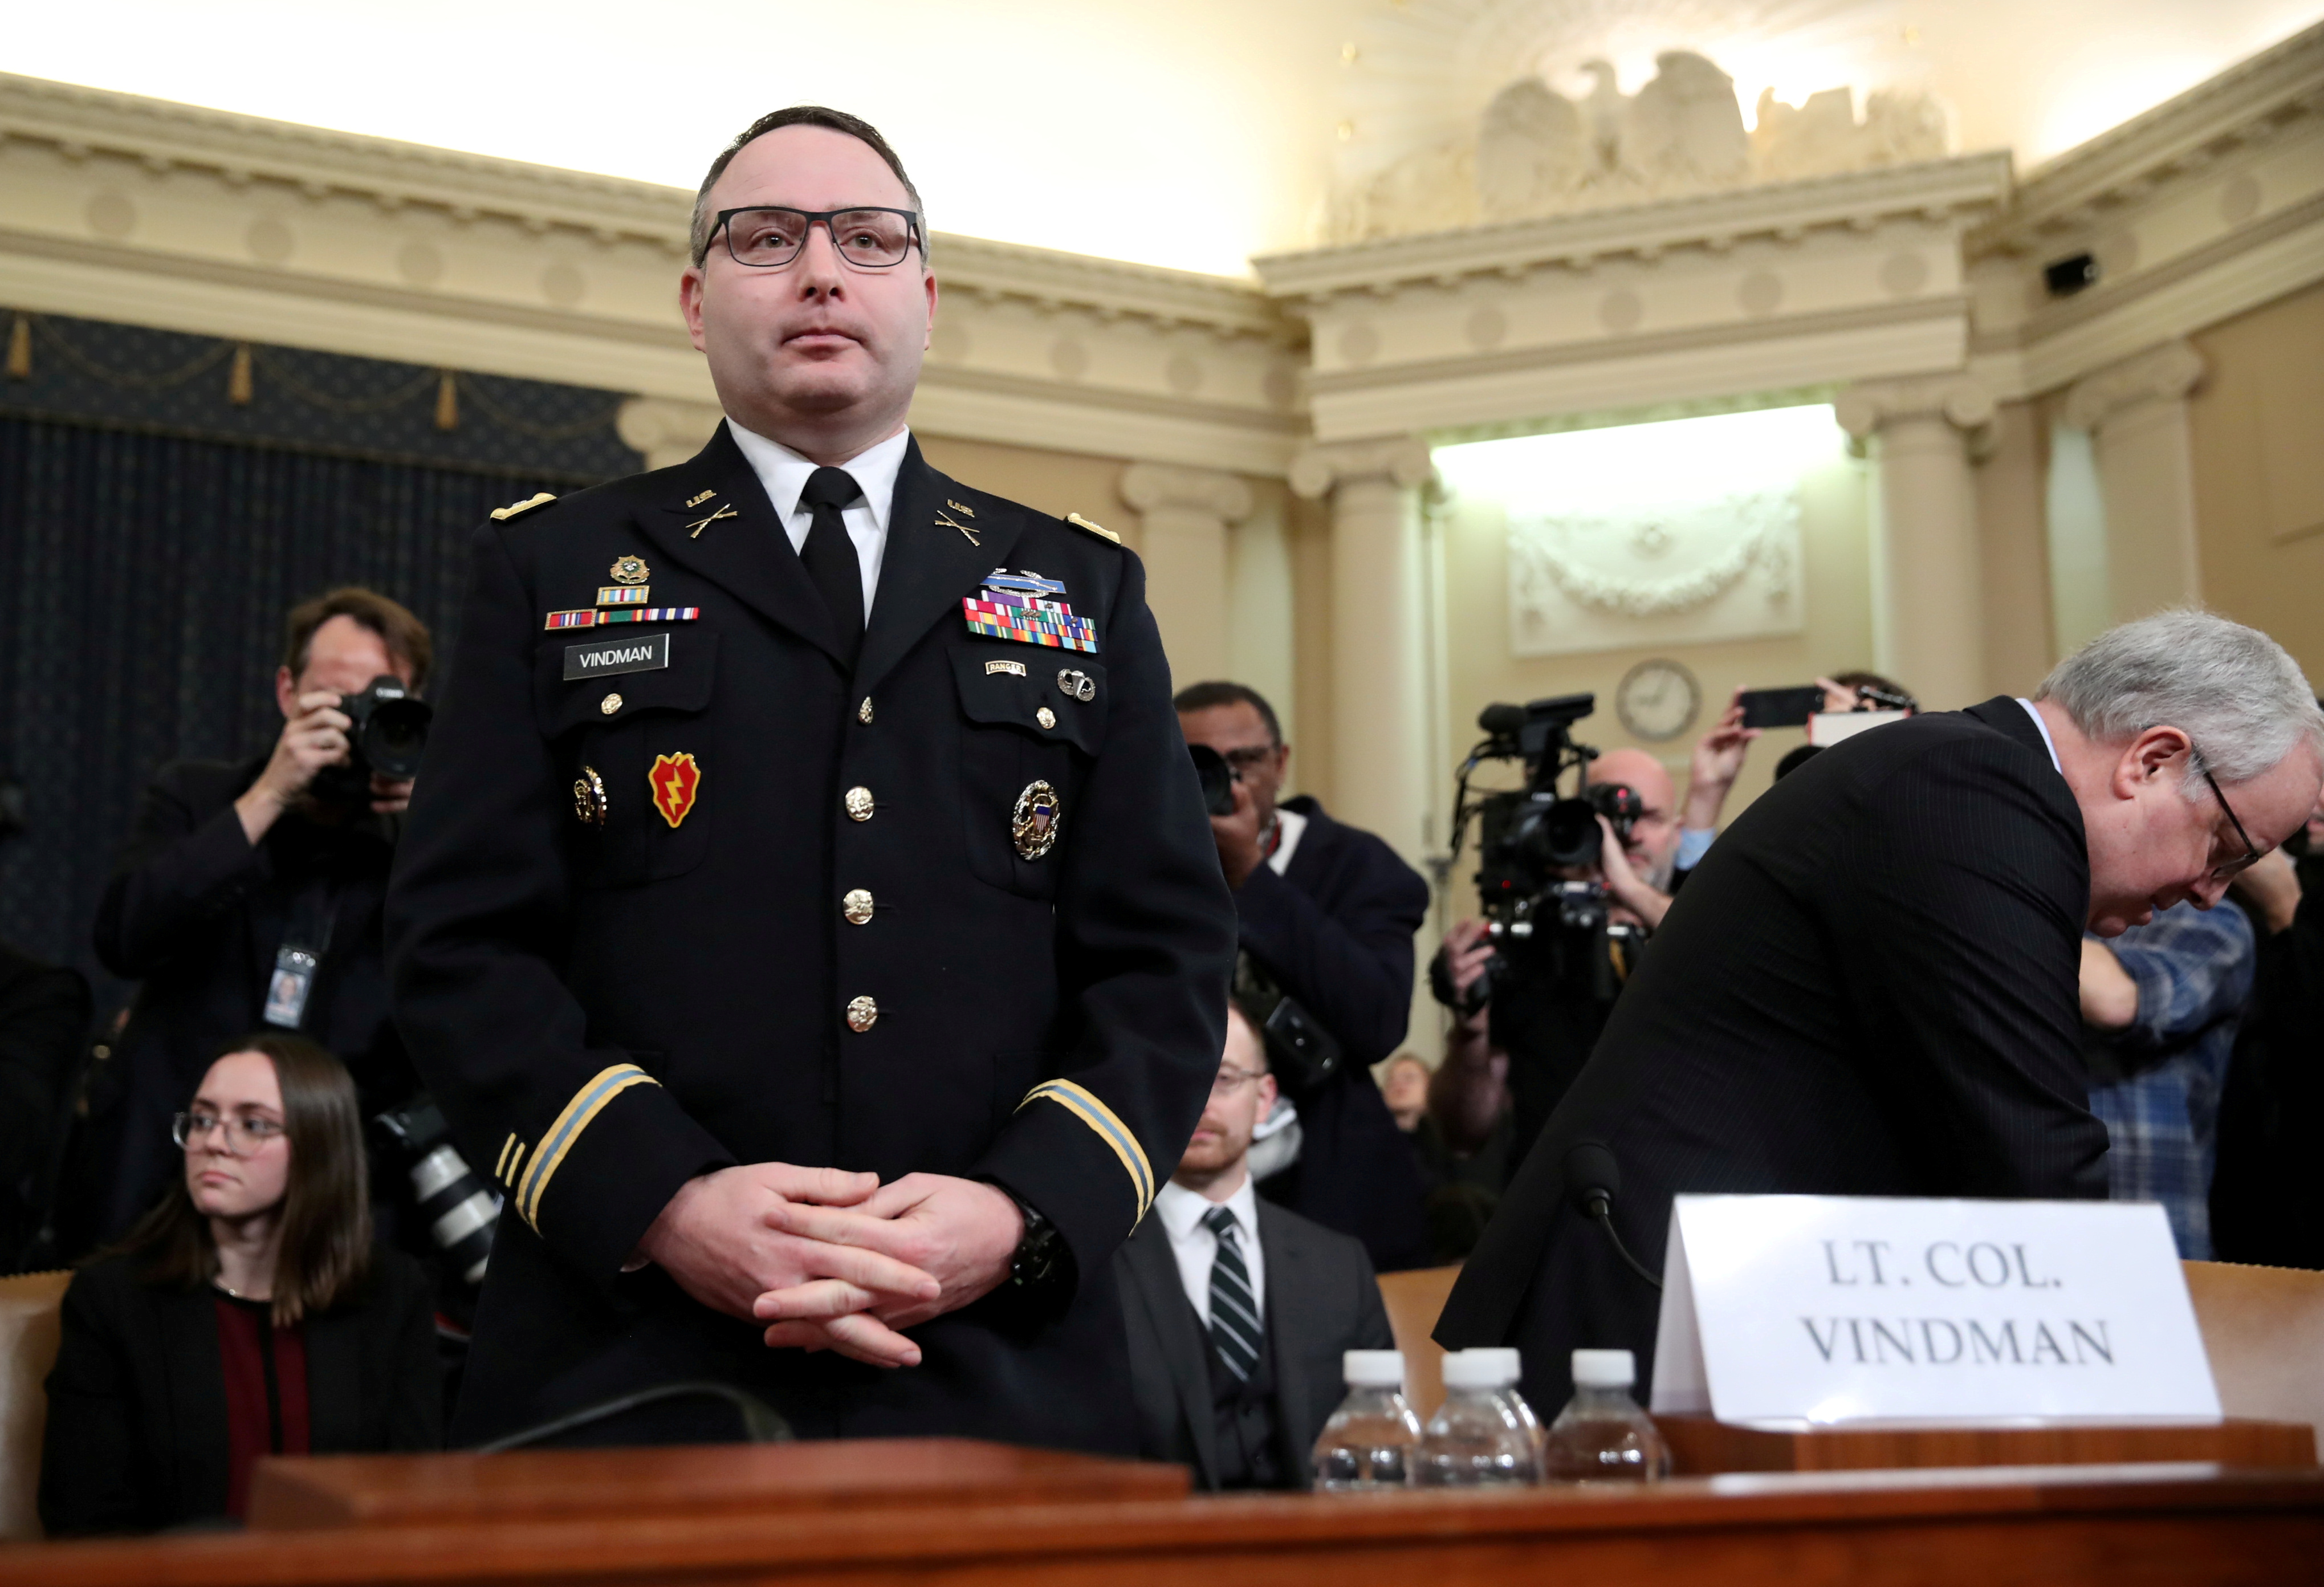 FILE PHOTO: Lt. Colonel Alexander Vindman, then-director for European Affairs at the National Security Council, arrives to testify before a House Intelligence Committee hearing as part of the impeachment inquiry into U.S. President Donald Trump on Capitol Hill in Washington, U.S., Nov. 19, 2019. REUTERS/Jonathan Ernst